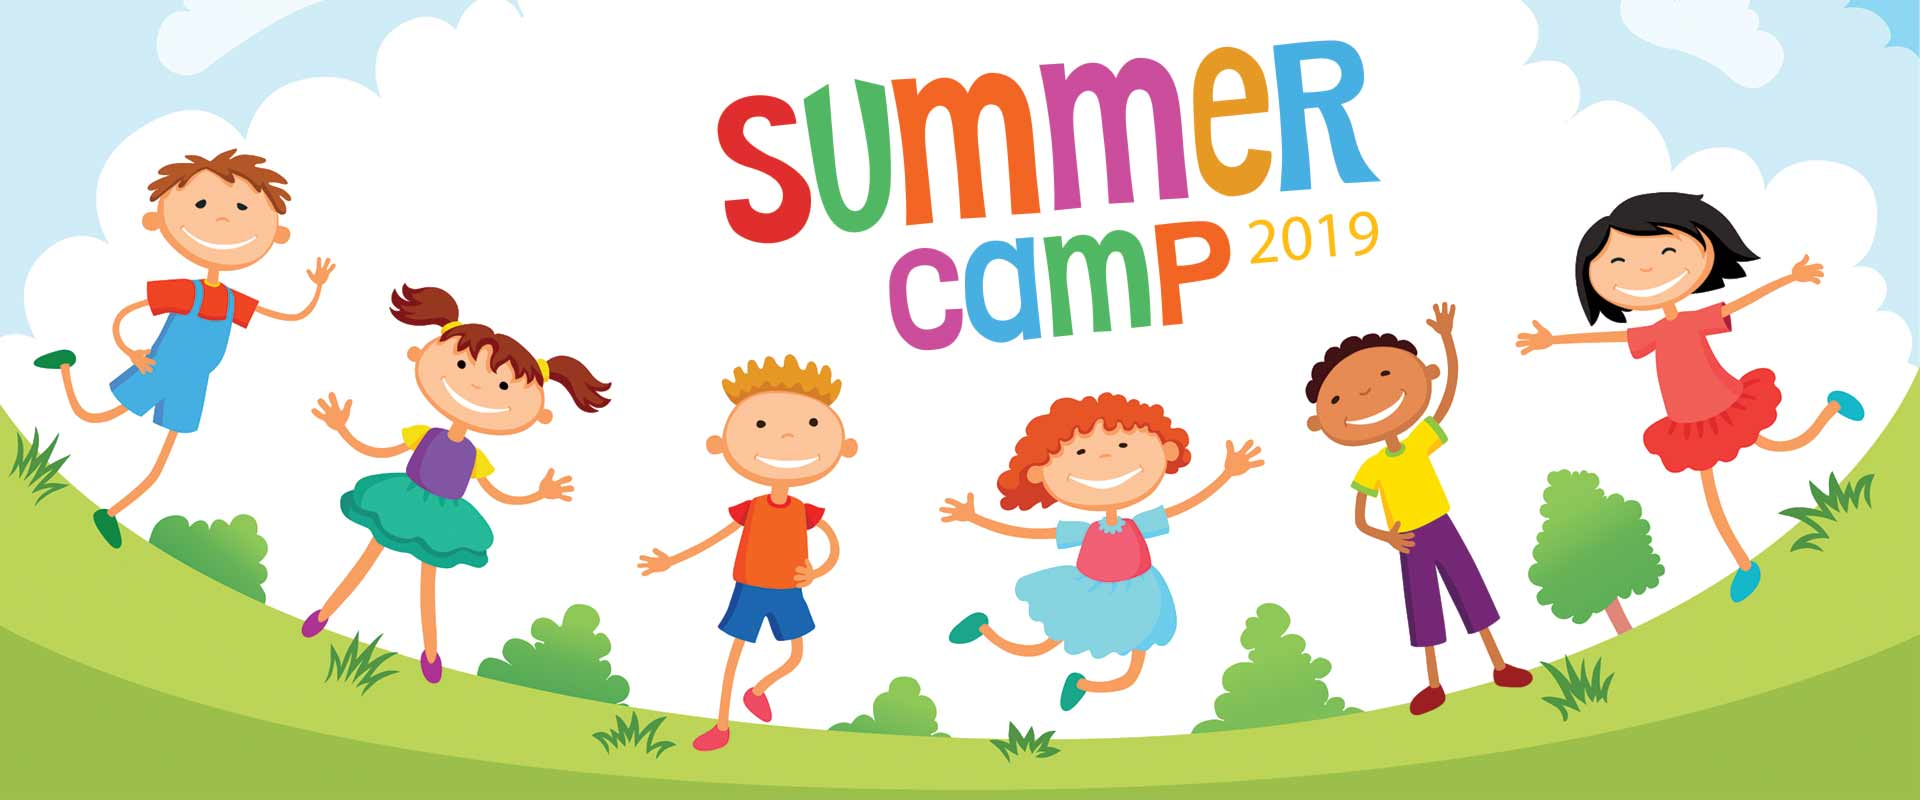 Summer Camp Guide 2019.